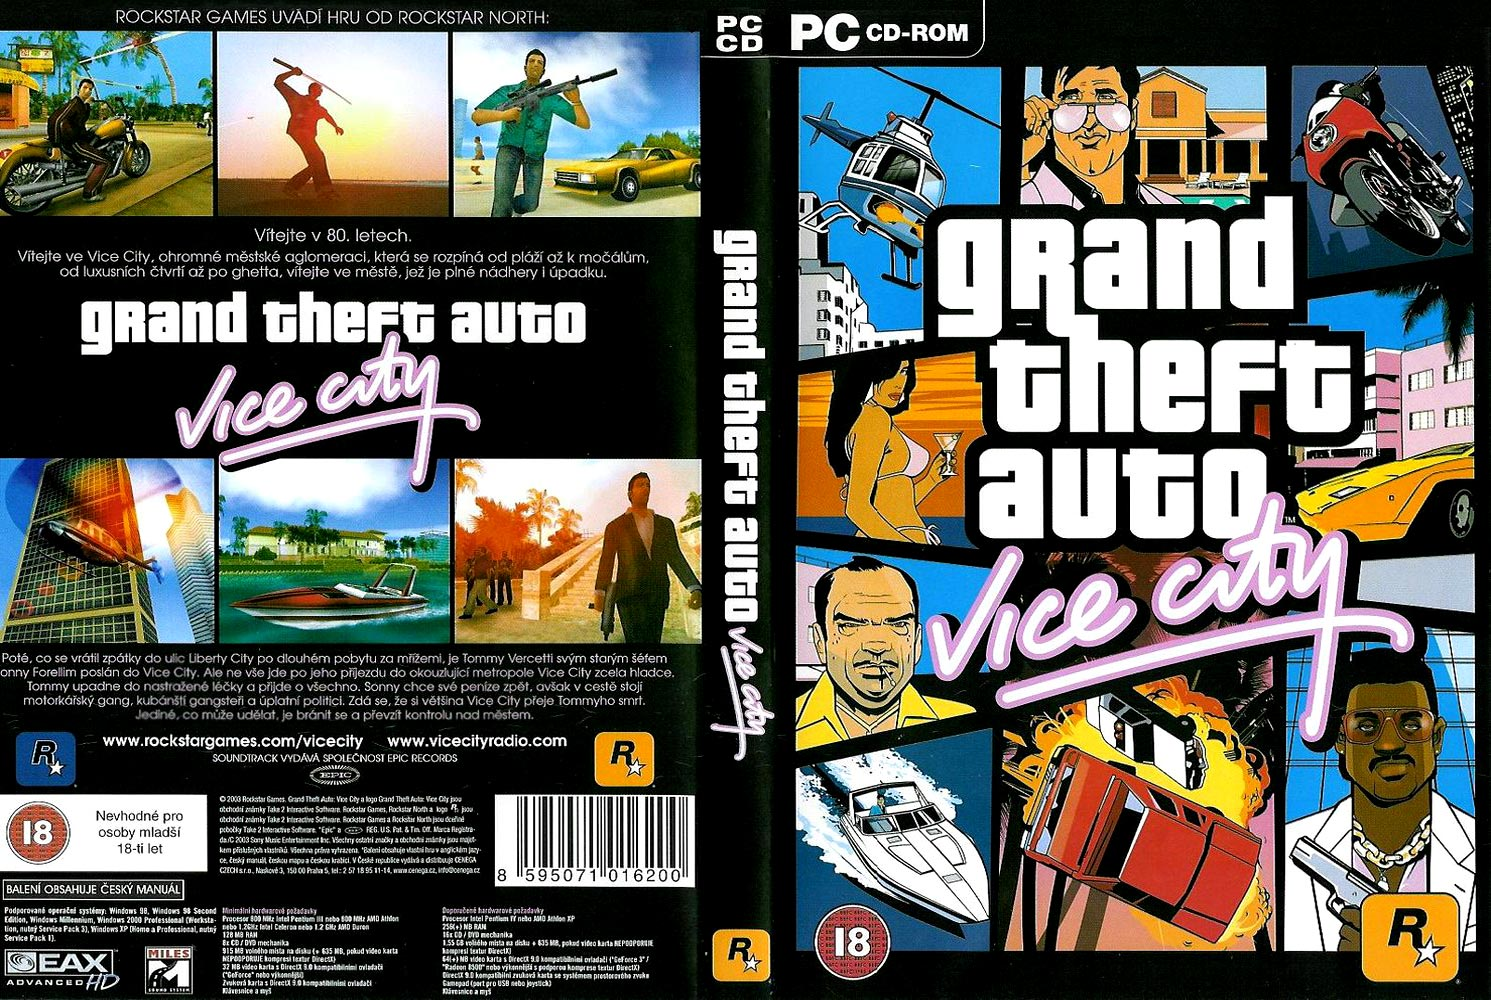 Gta vice city xxx game sex image